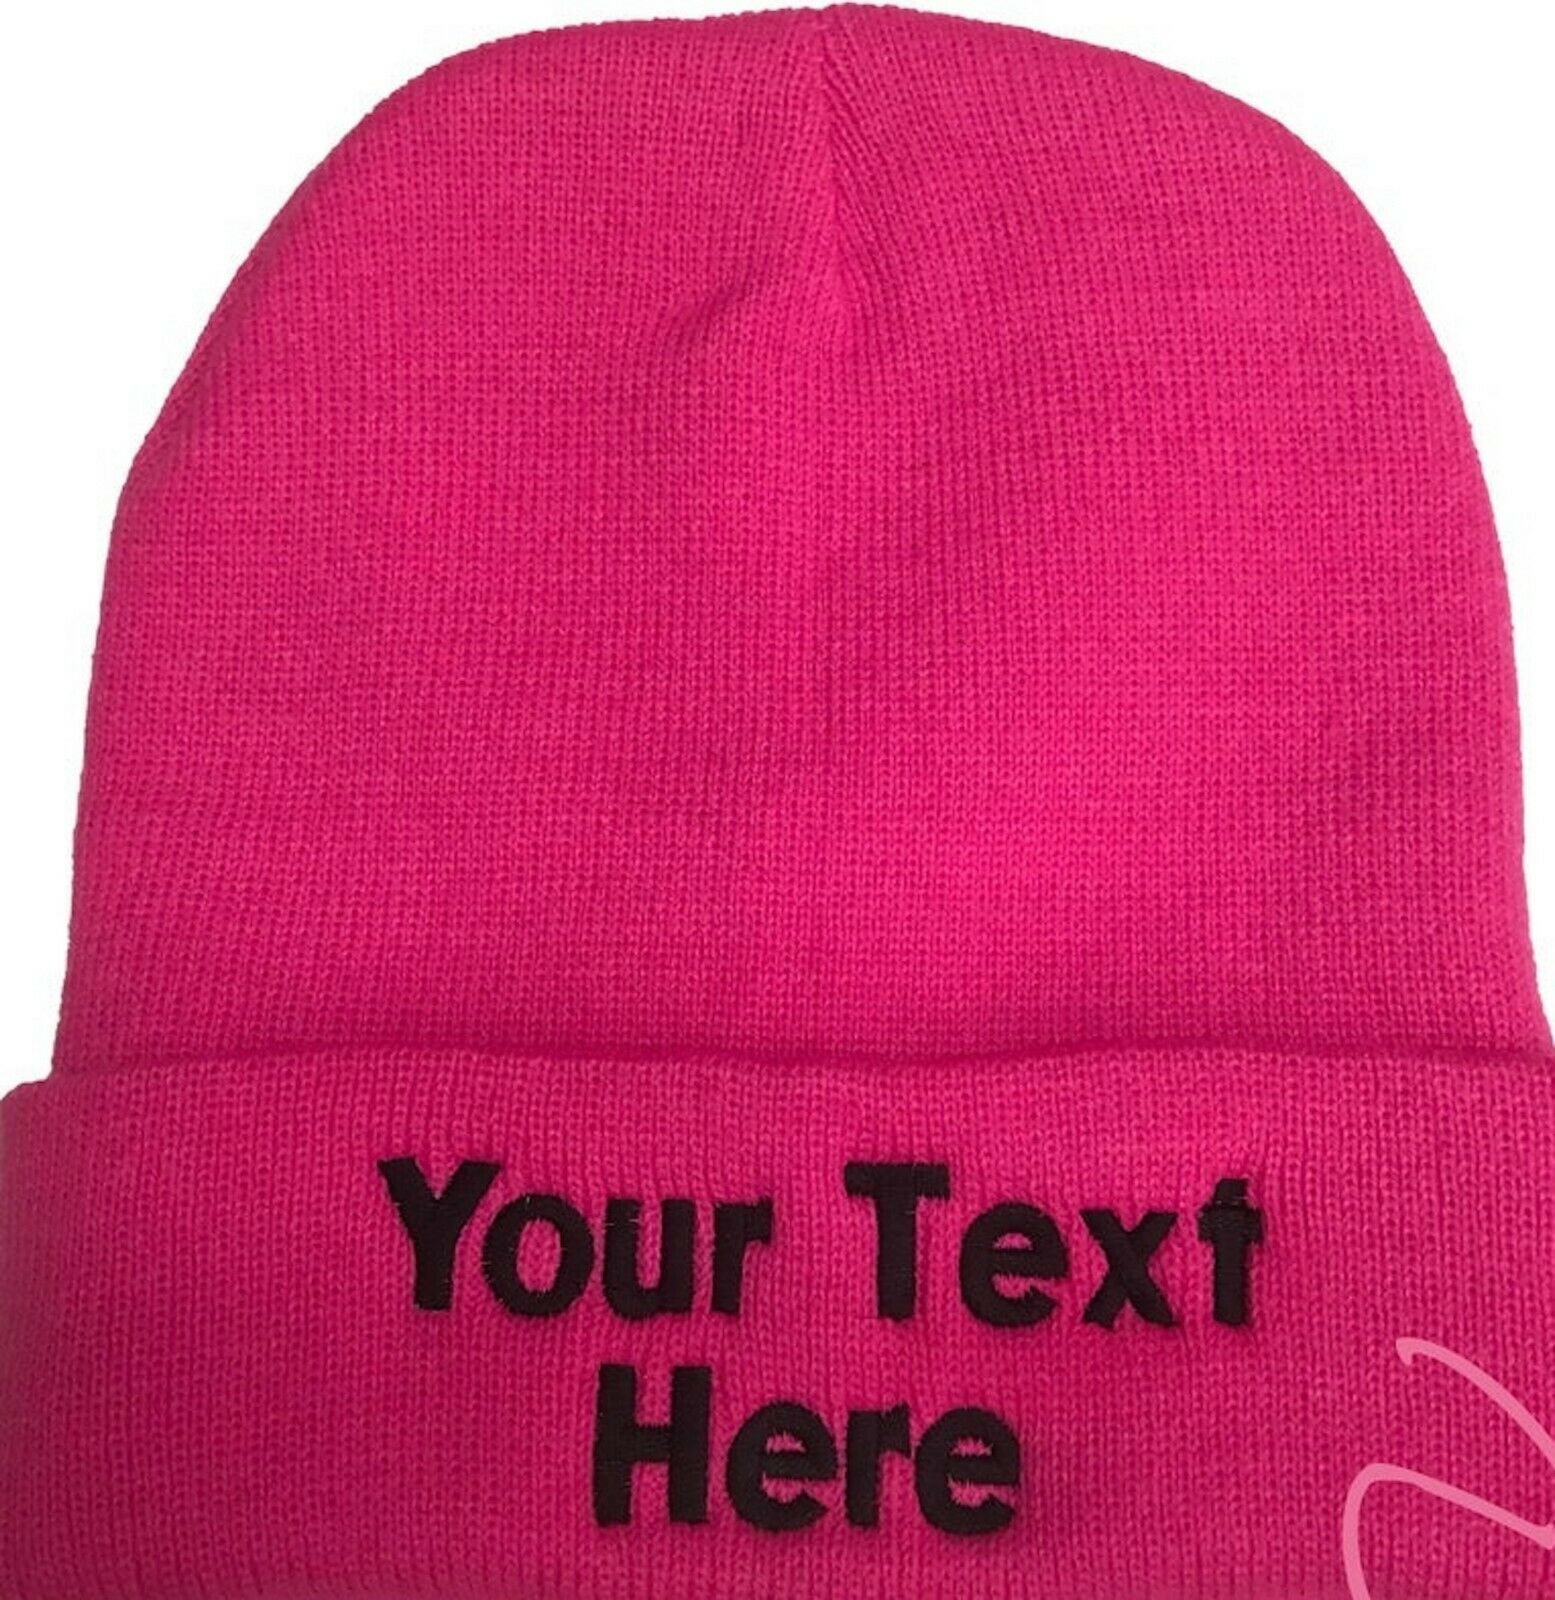 Neon pink custom embroidered beanie with the folded part